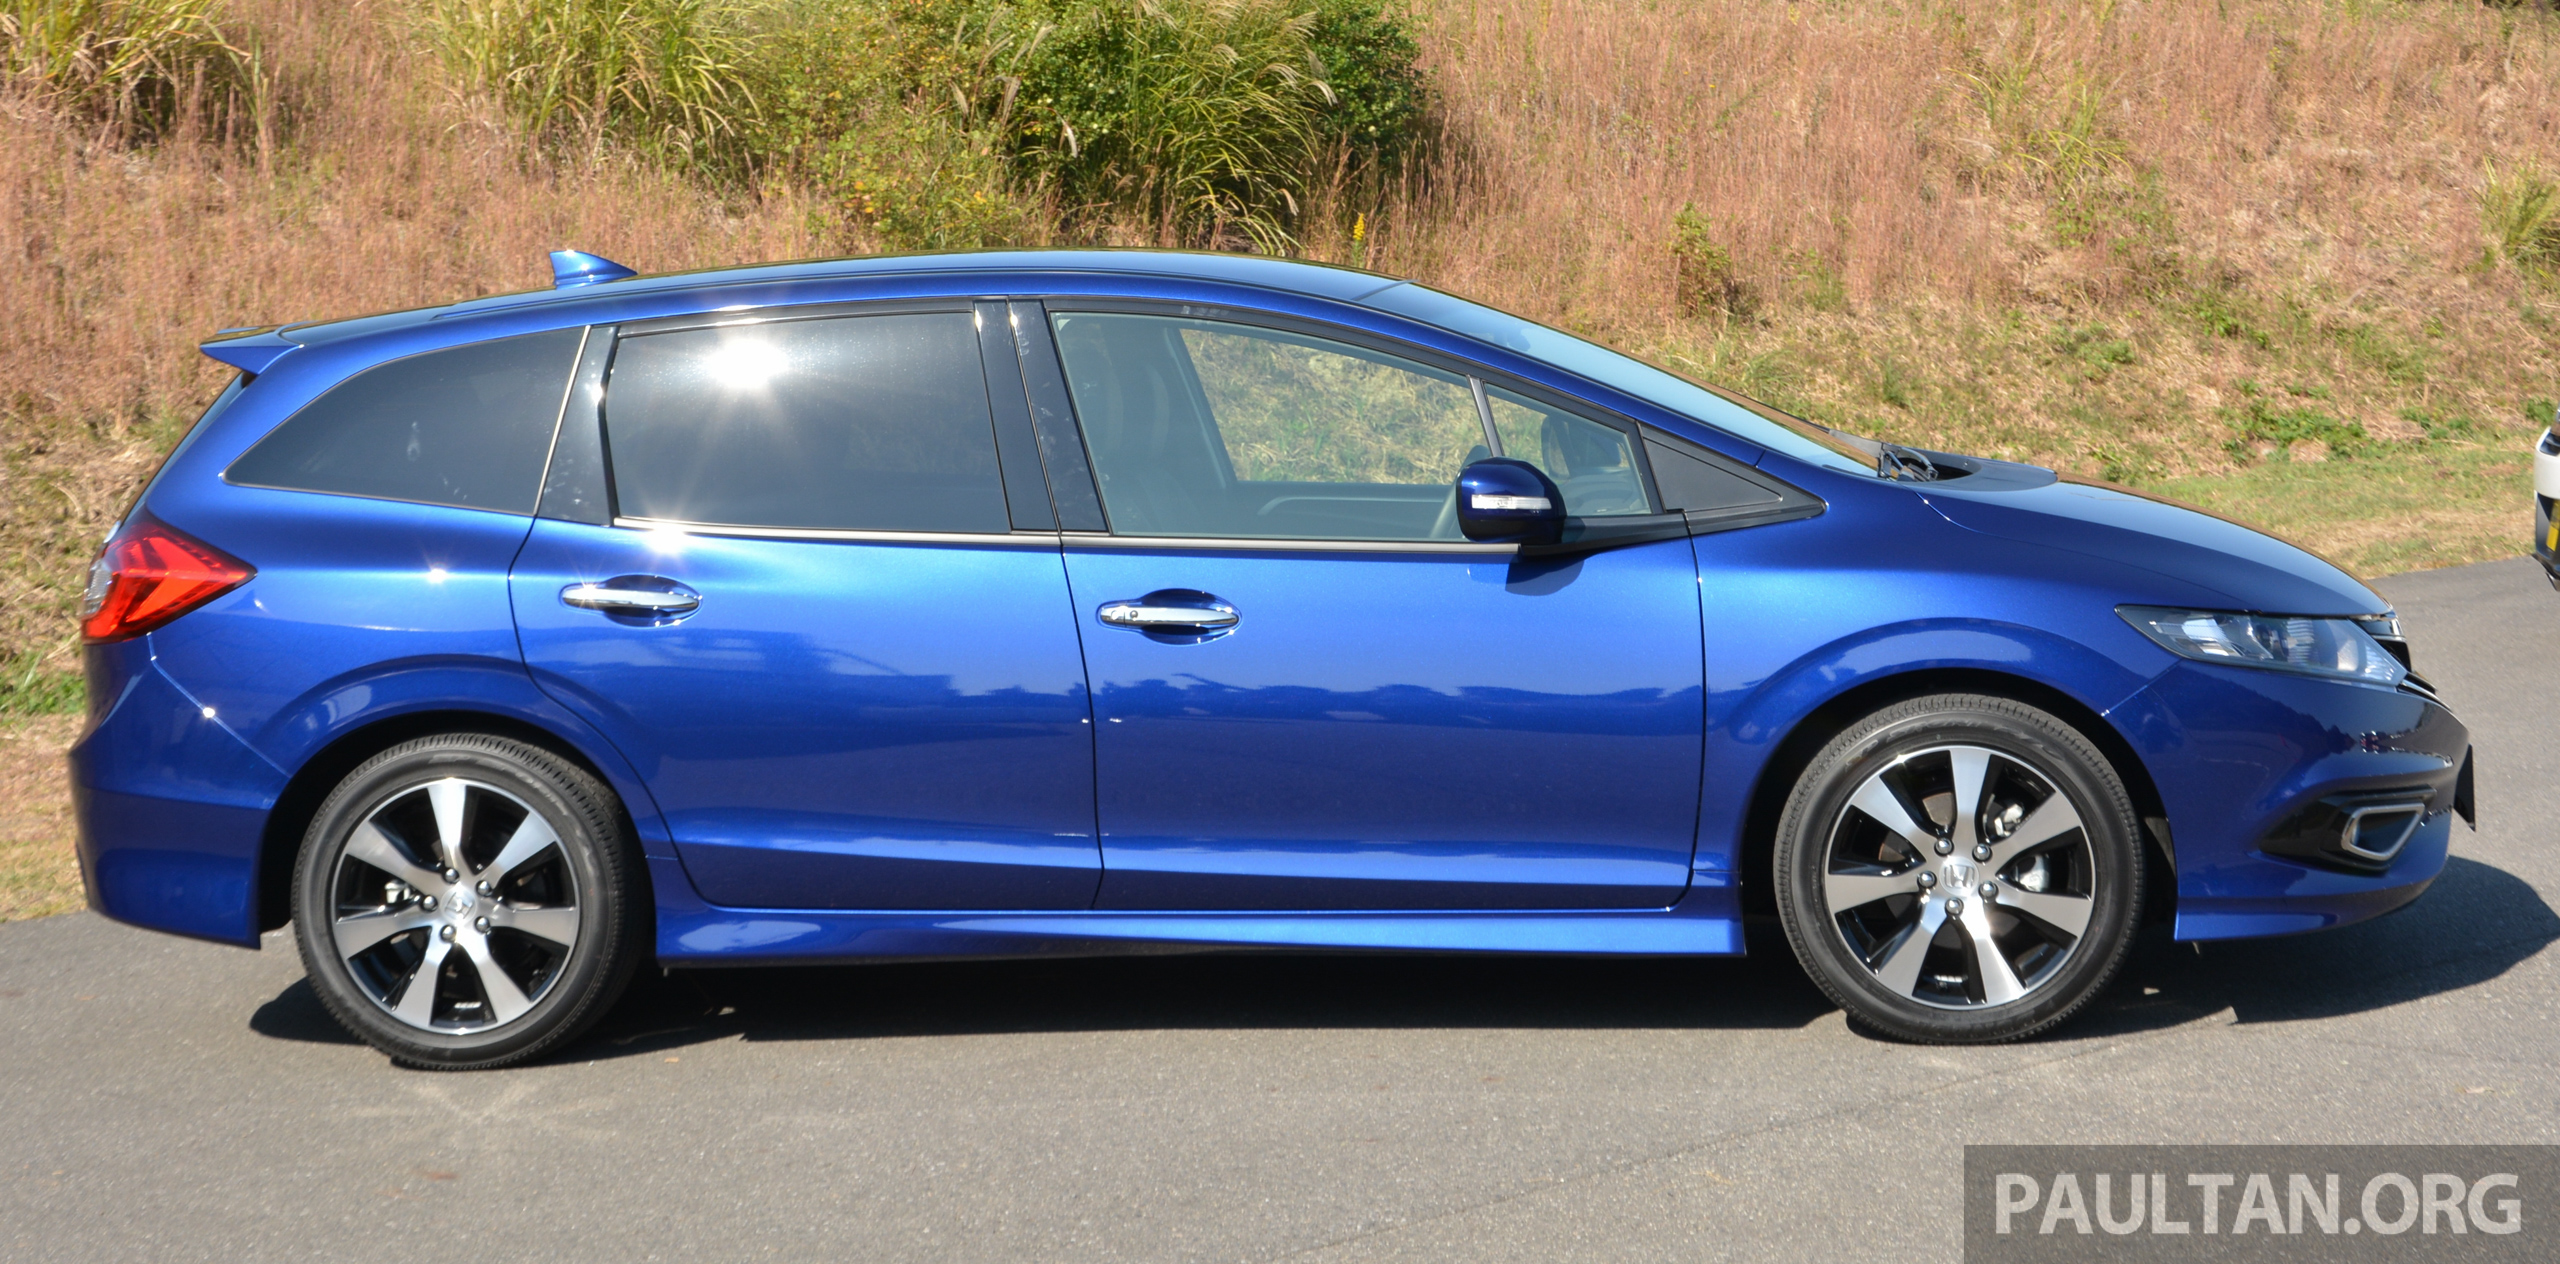 Honda Civic Rs >> DRIVEN: Honda 1.0 and 1.5 litre VTEC Turbo – first impressions via a Euro Civic hatch and Jade ...